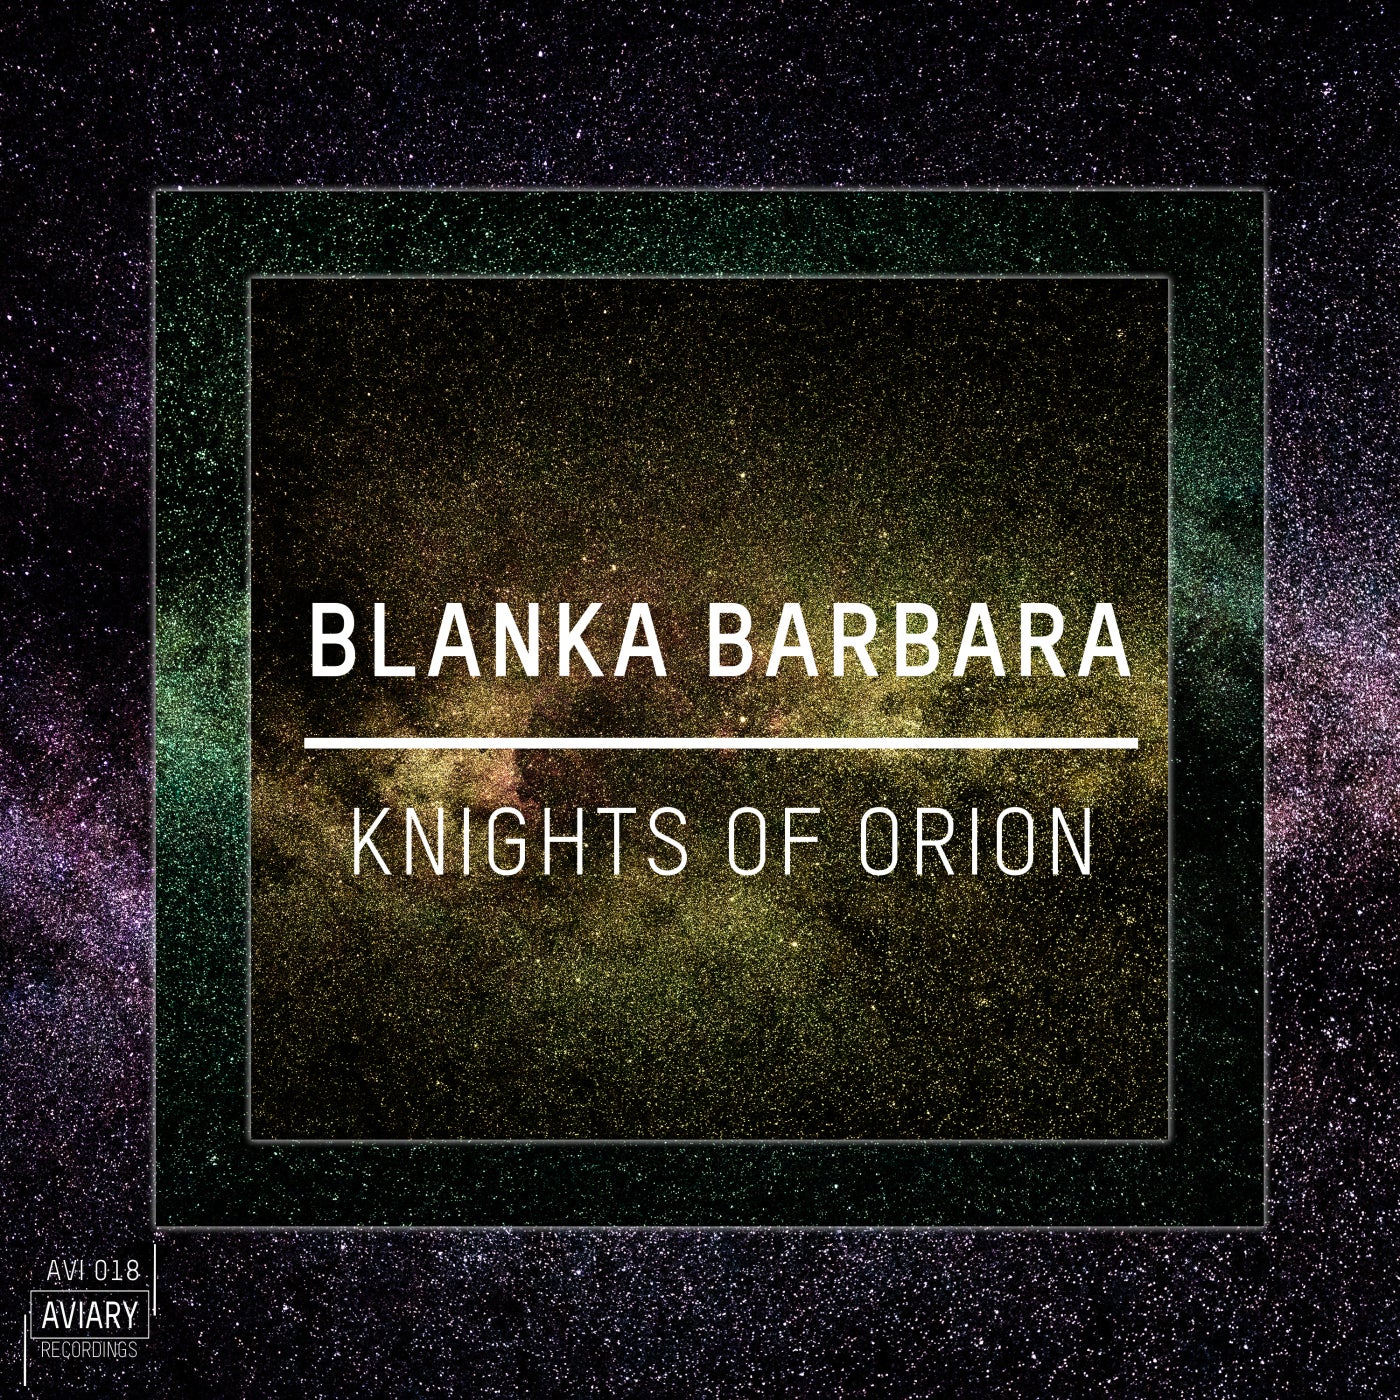 Knights of Orion